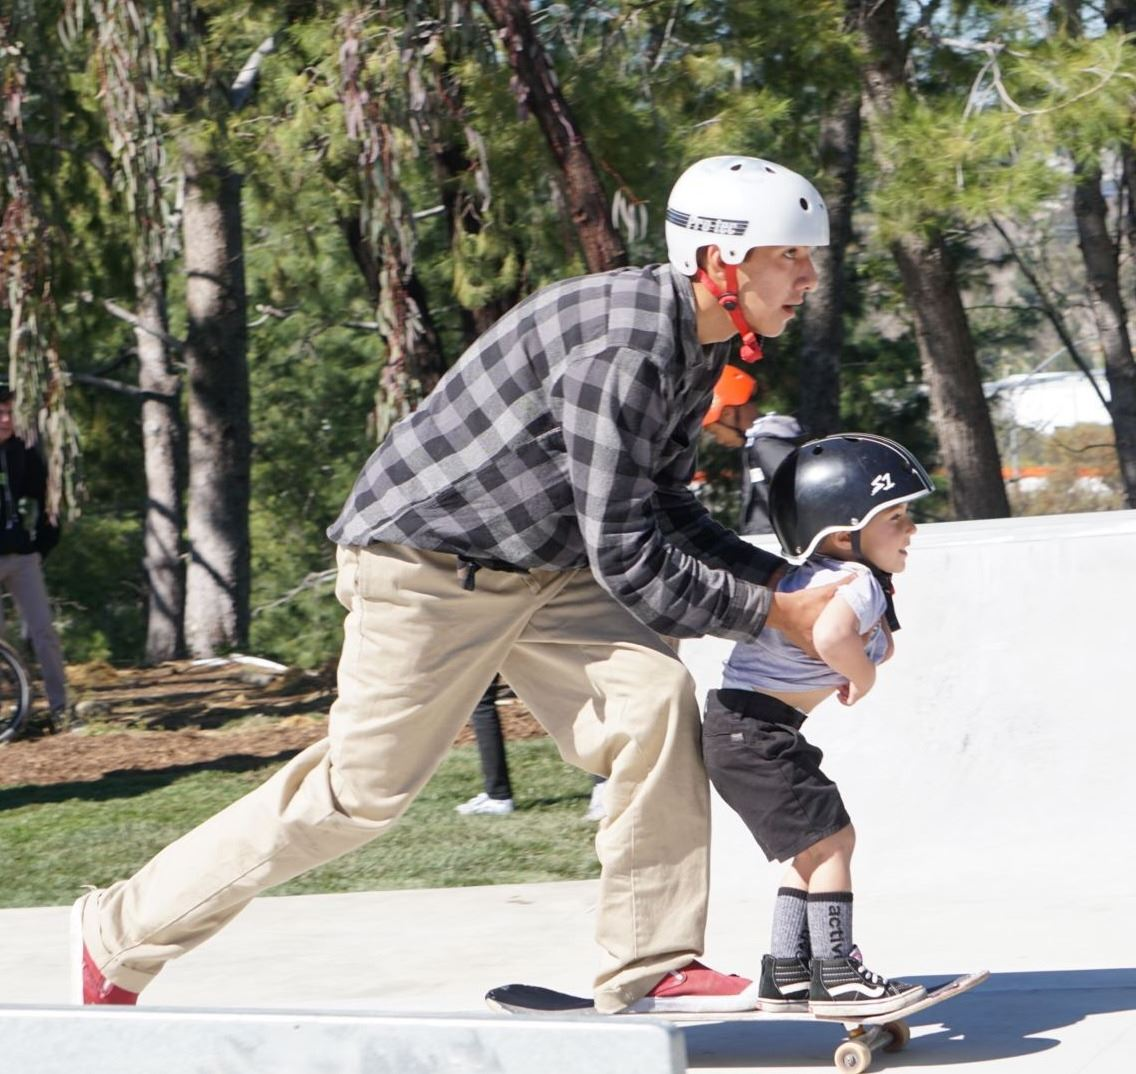 Adult and young boy skateboarding at Logan Wells Memorial Skate Park Opening